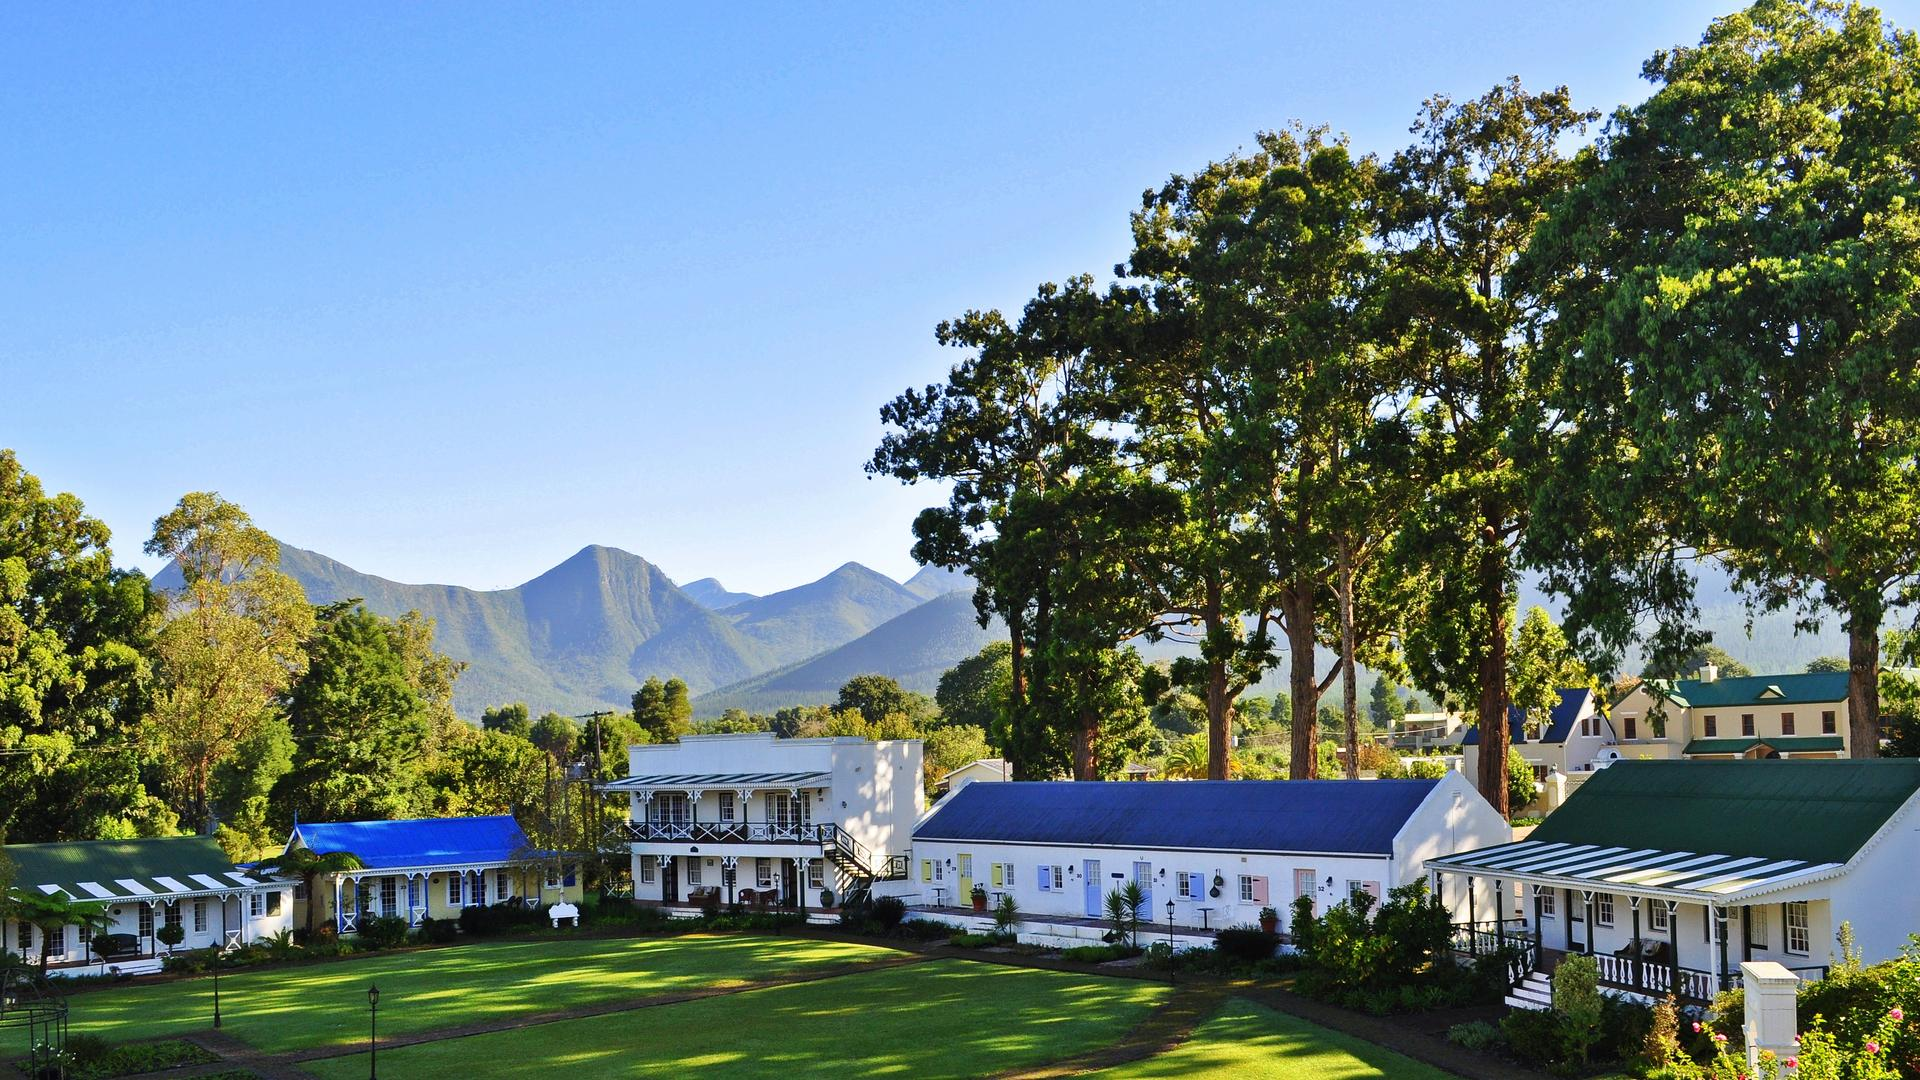 Final itinerary garden route founders lodge - Cape town to port elizabeth itinerary ...